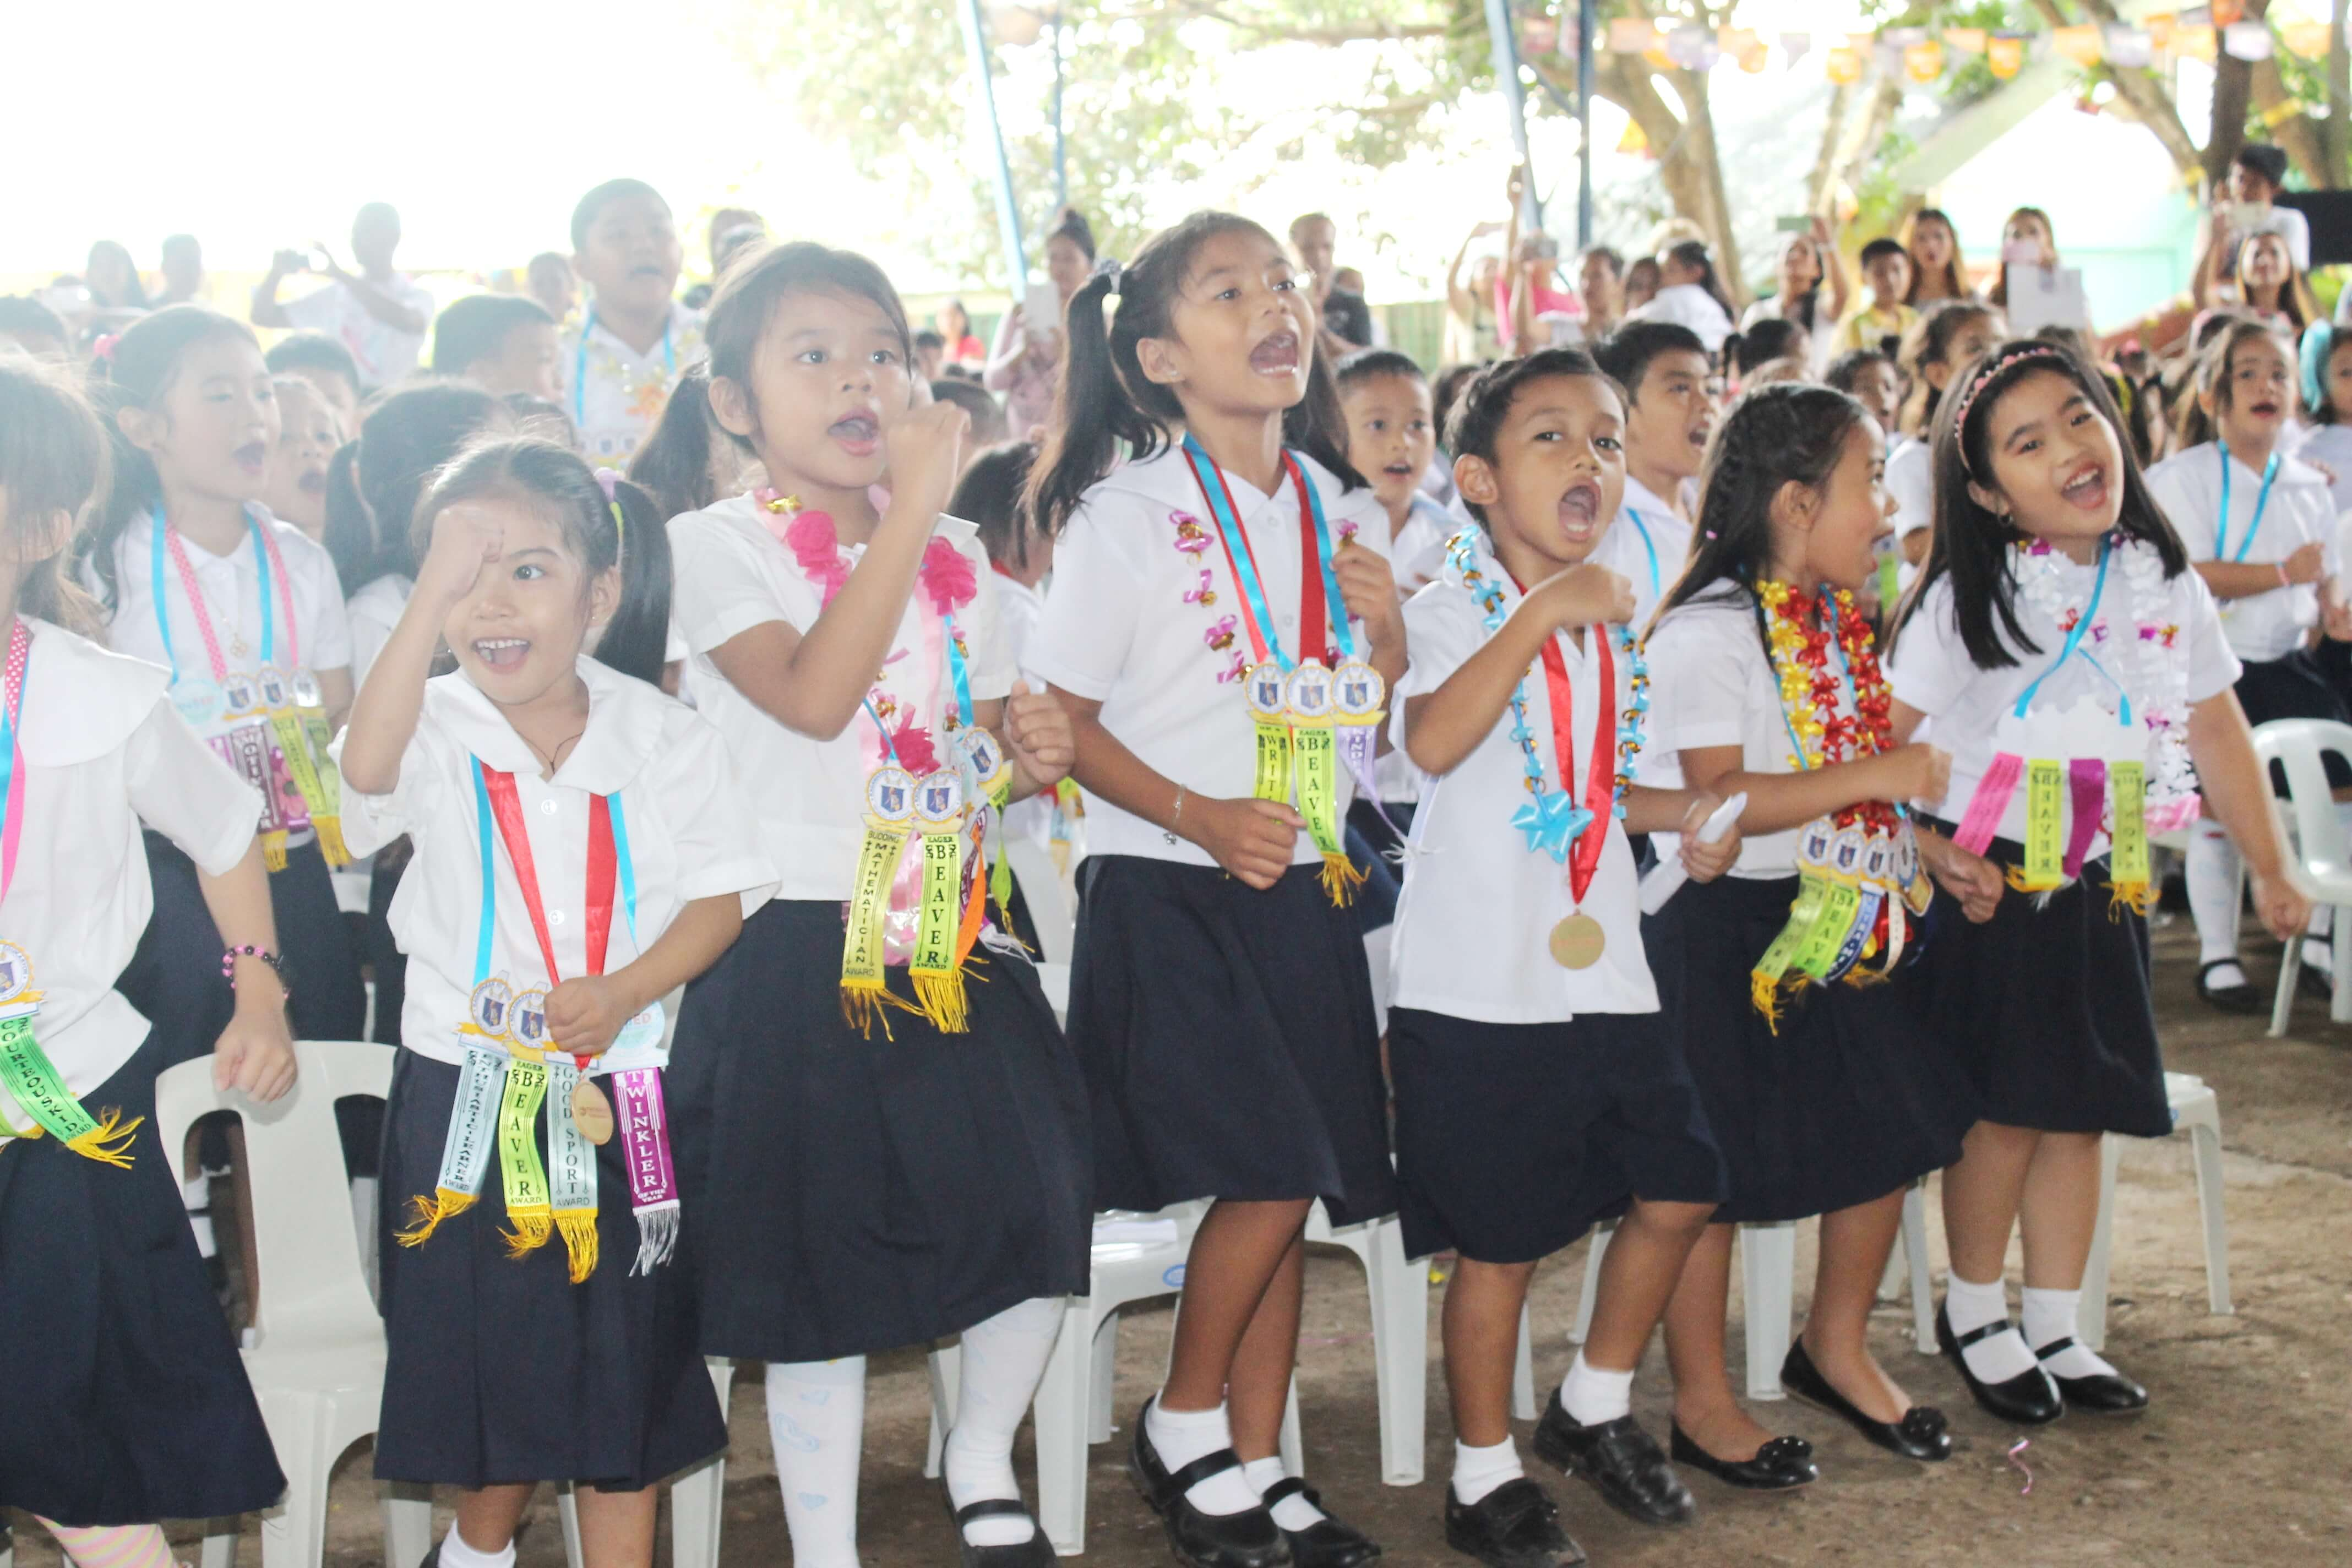 Students of Doña Asuncion Hizon Elementary School in Davao City move up